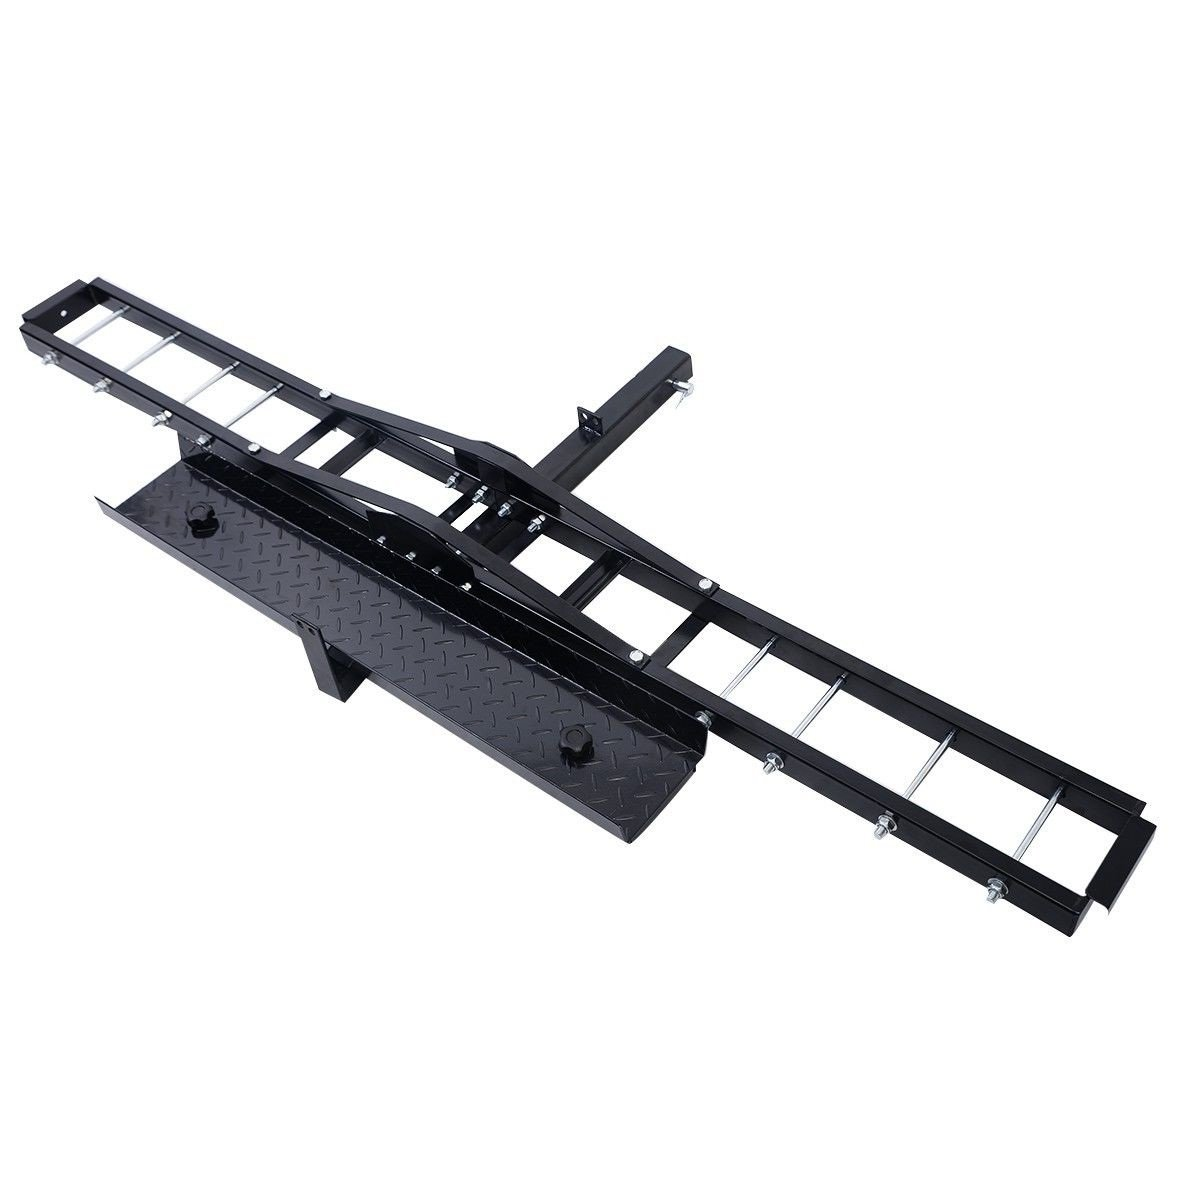 Scooter Hitch Mount Motorcycle Transporter Rack